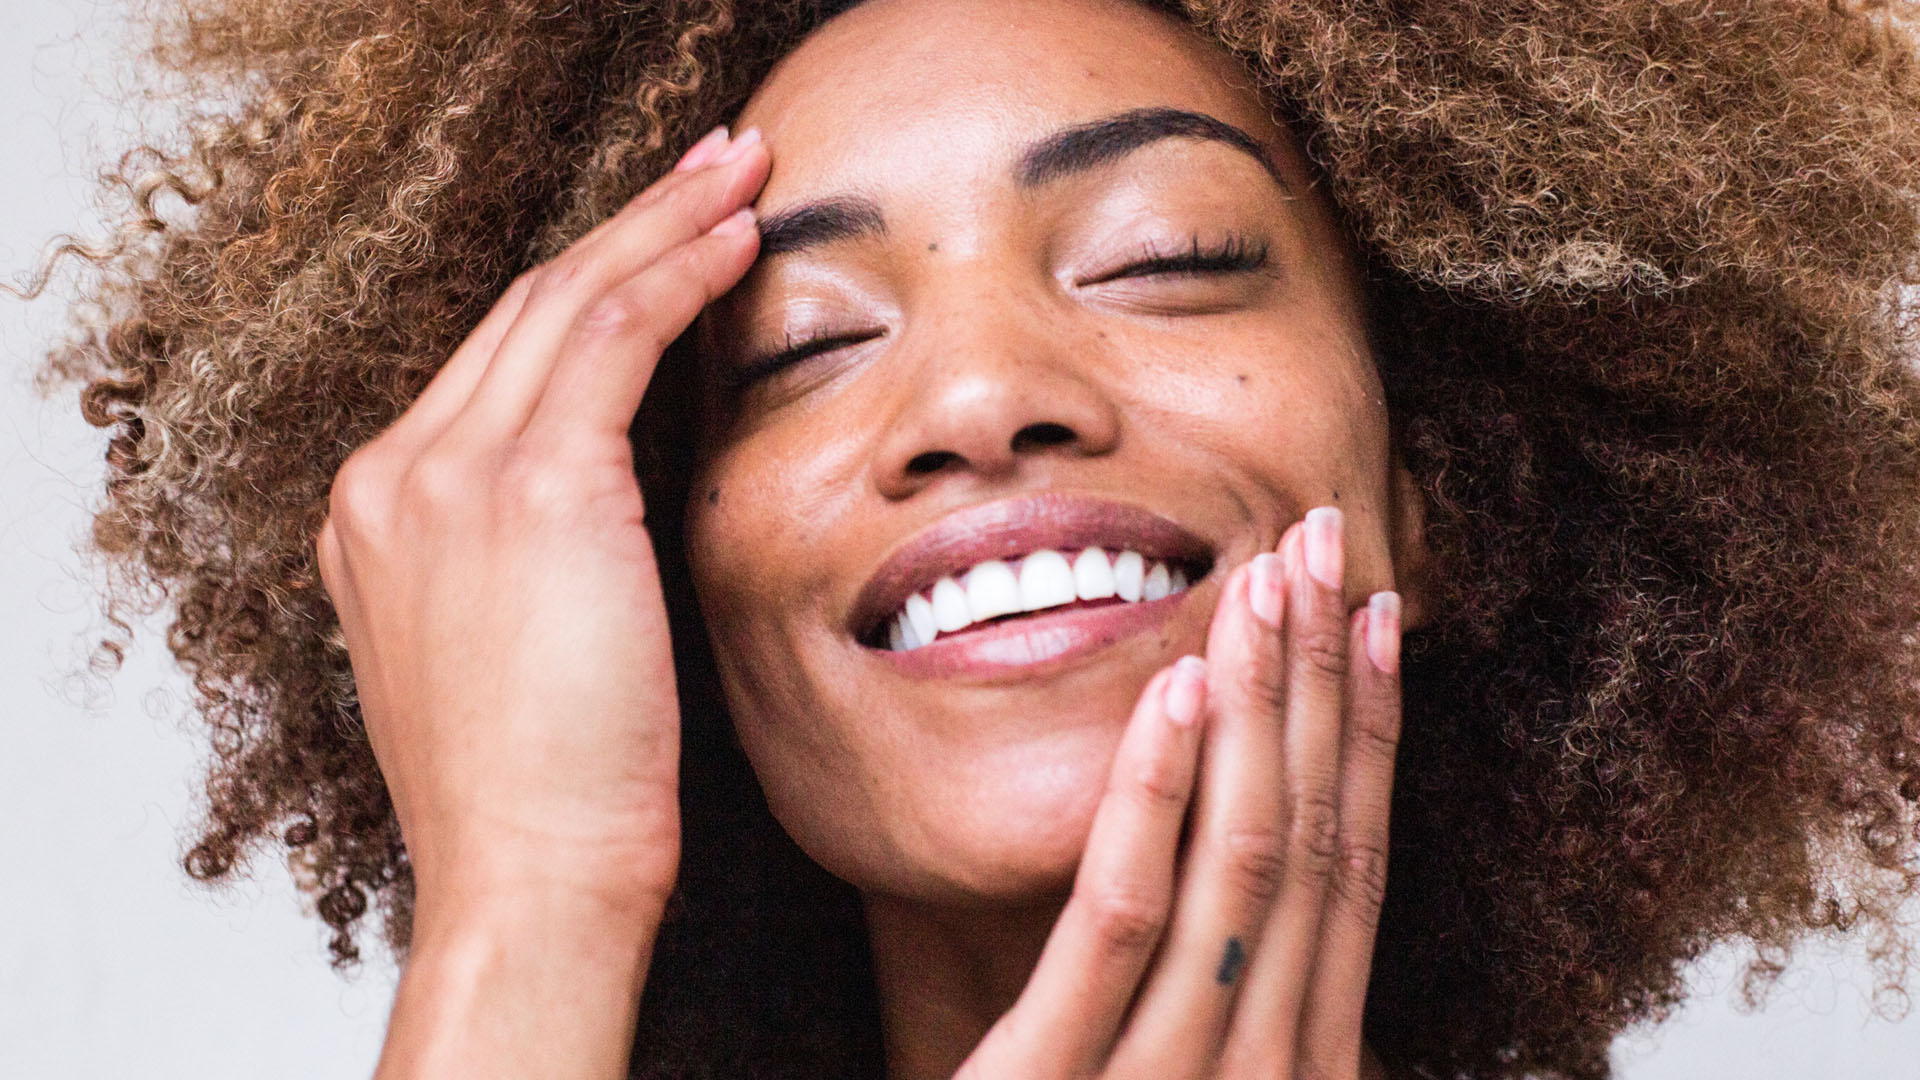 Shea butter works well as a mild sun protectant, softens skin and seals in moisture. Photo: Supplied/Unsplash